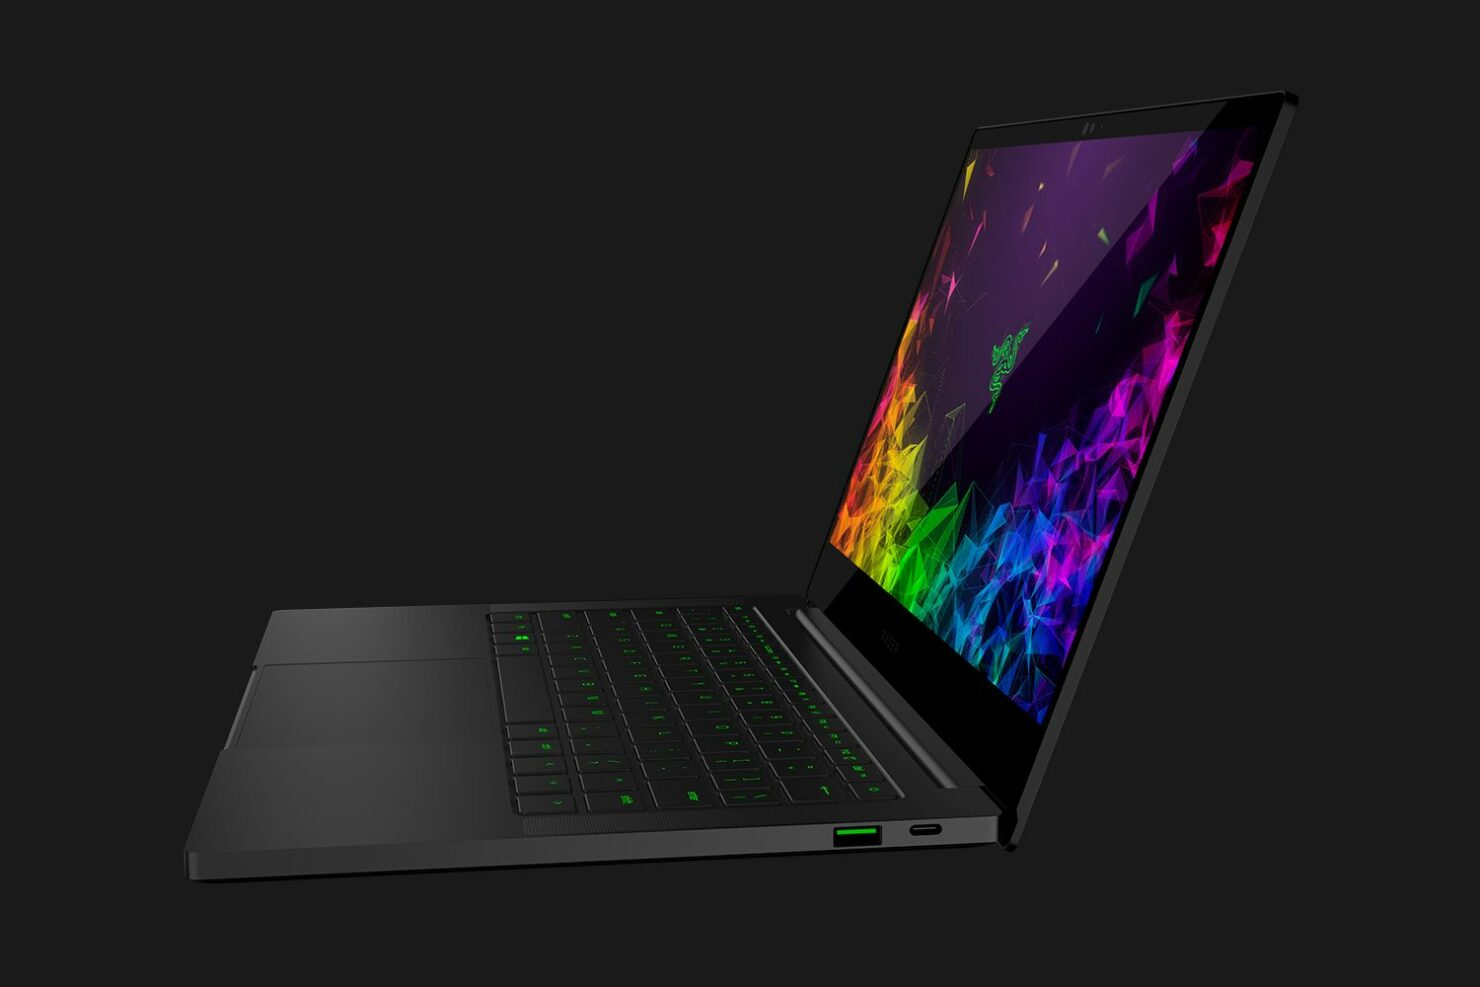 Razer Blade Stealth 13 With Quad-Core CPU, 120Hz Display, Gtx 1650 Ti and More Available for $300 Less on Amazon